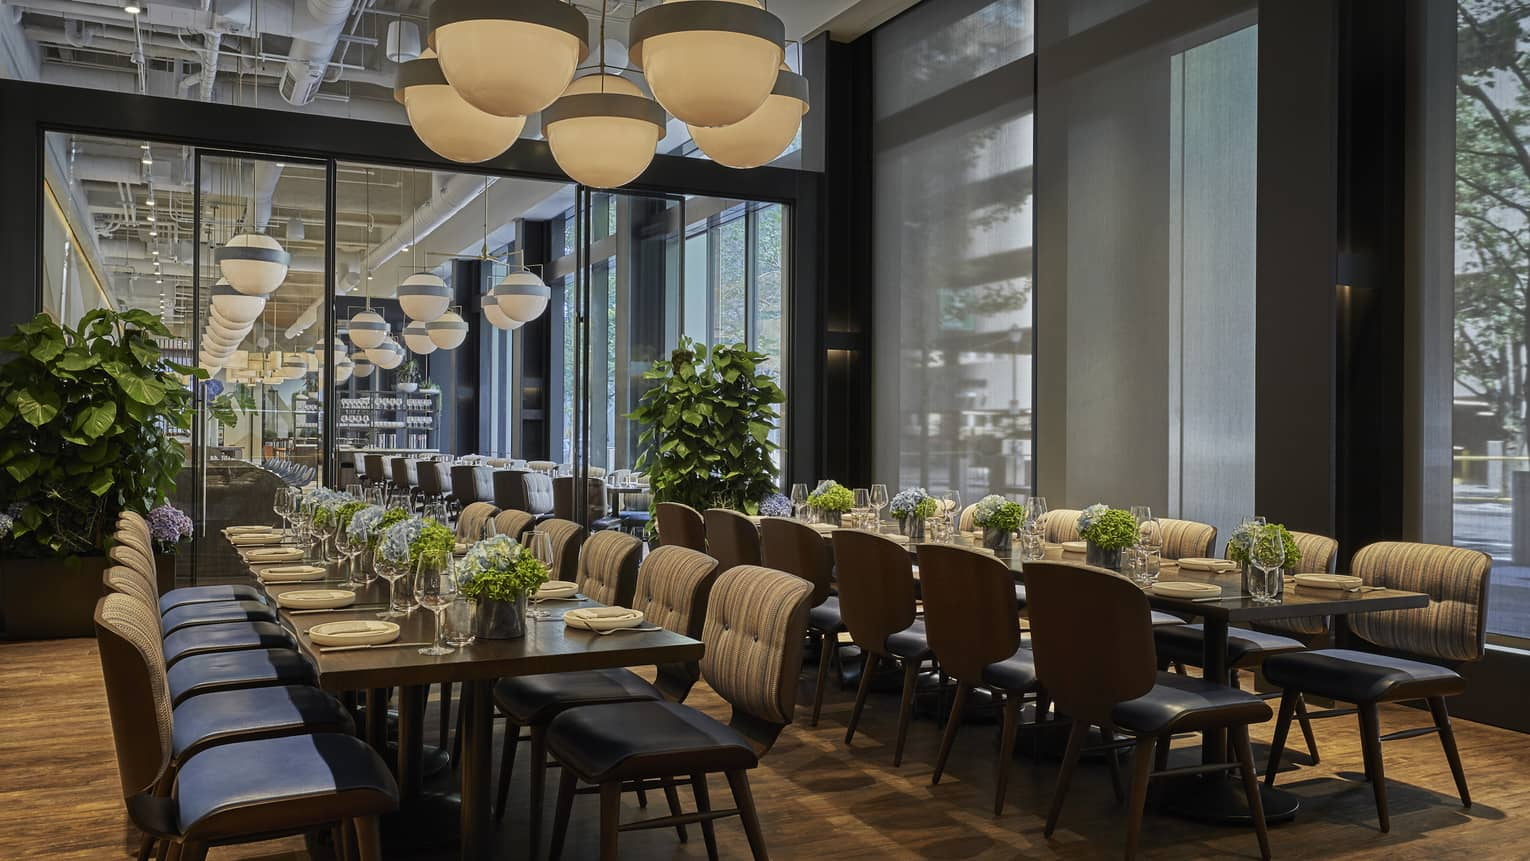 Two long tables are set with plates and white floral arrangements in Vernick Restaurant in Four Seasons Philadelphia